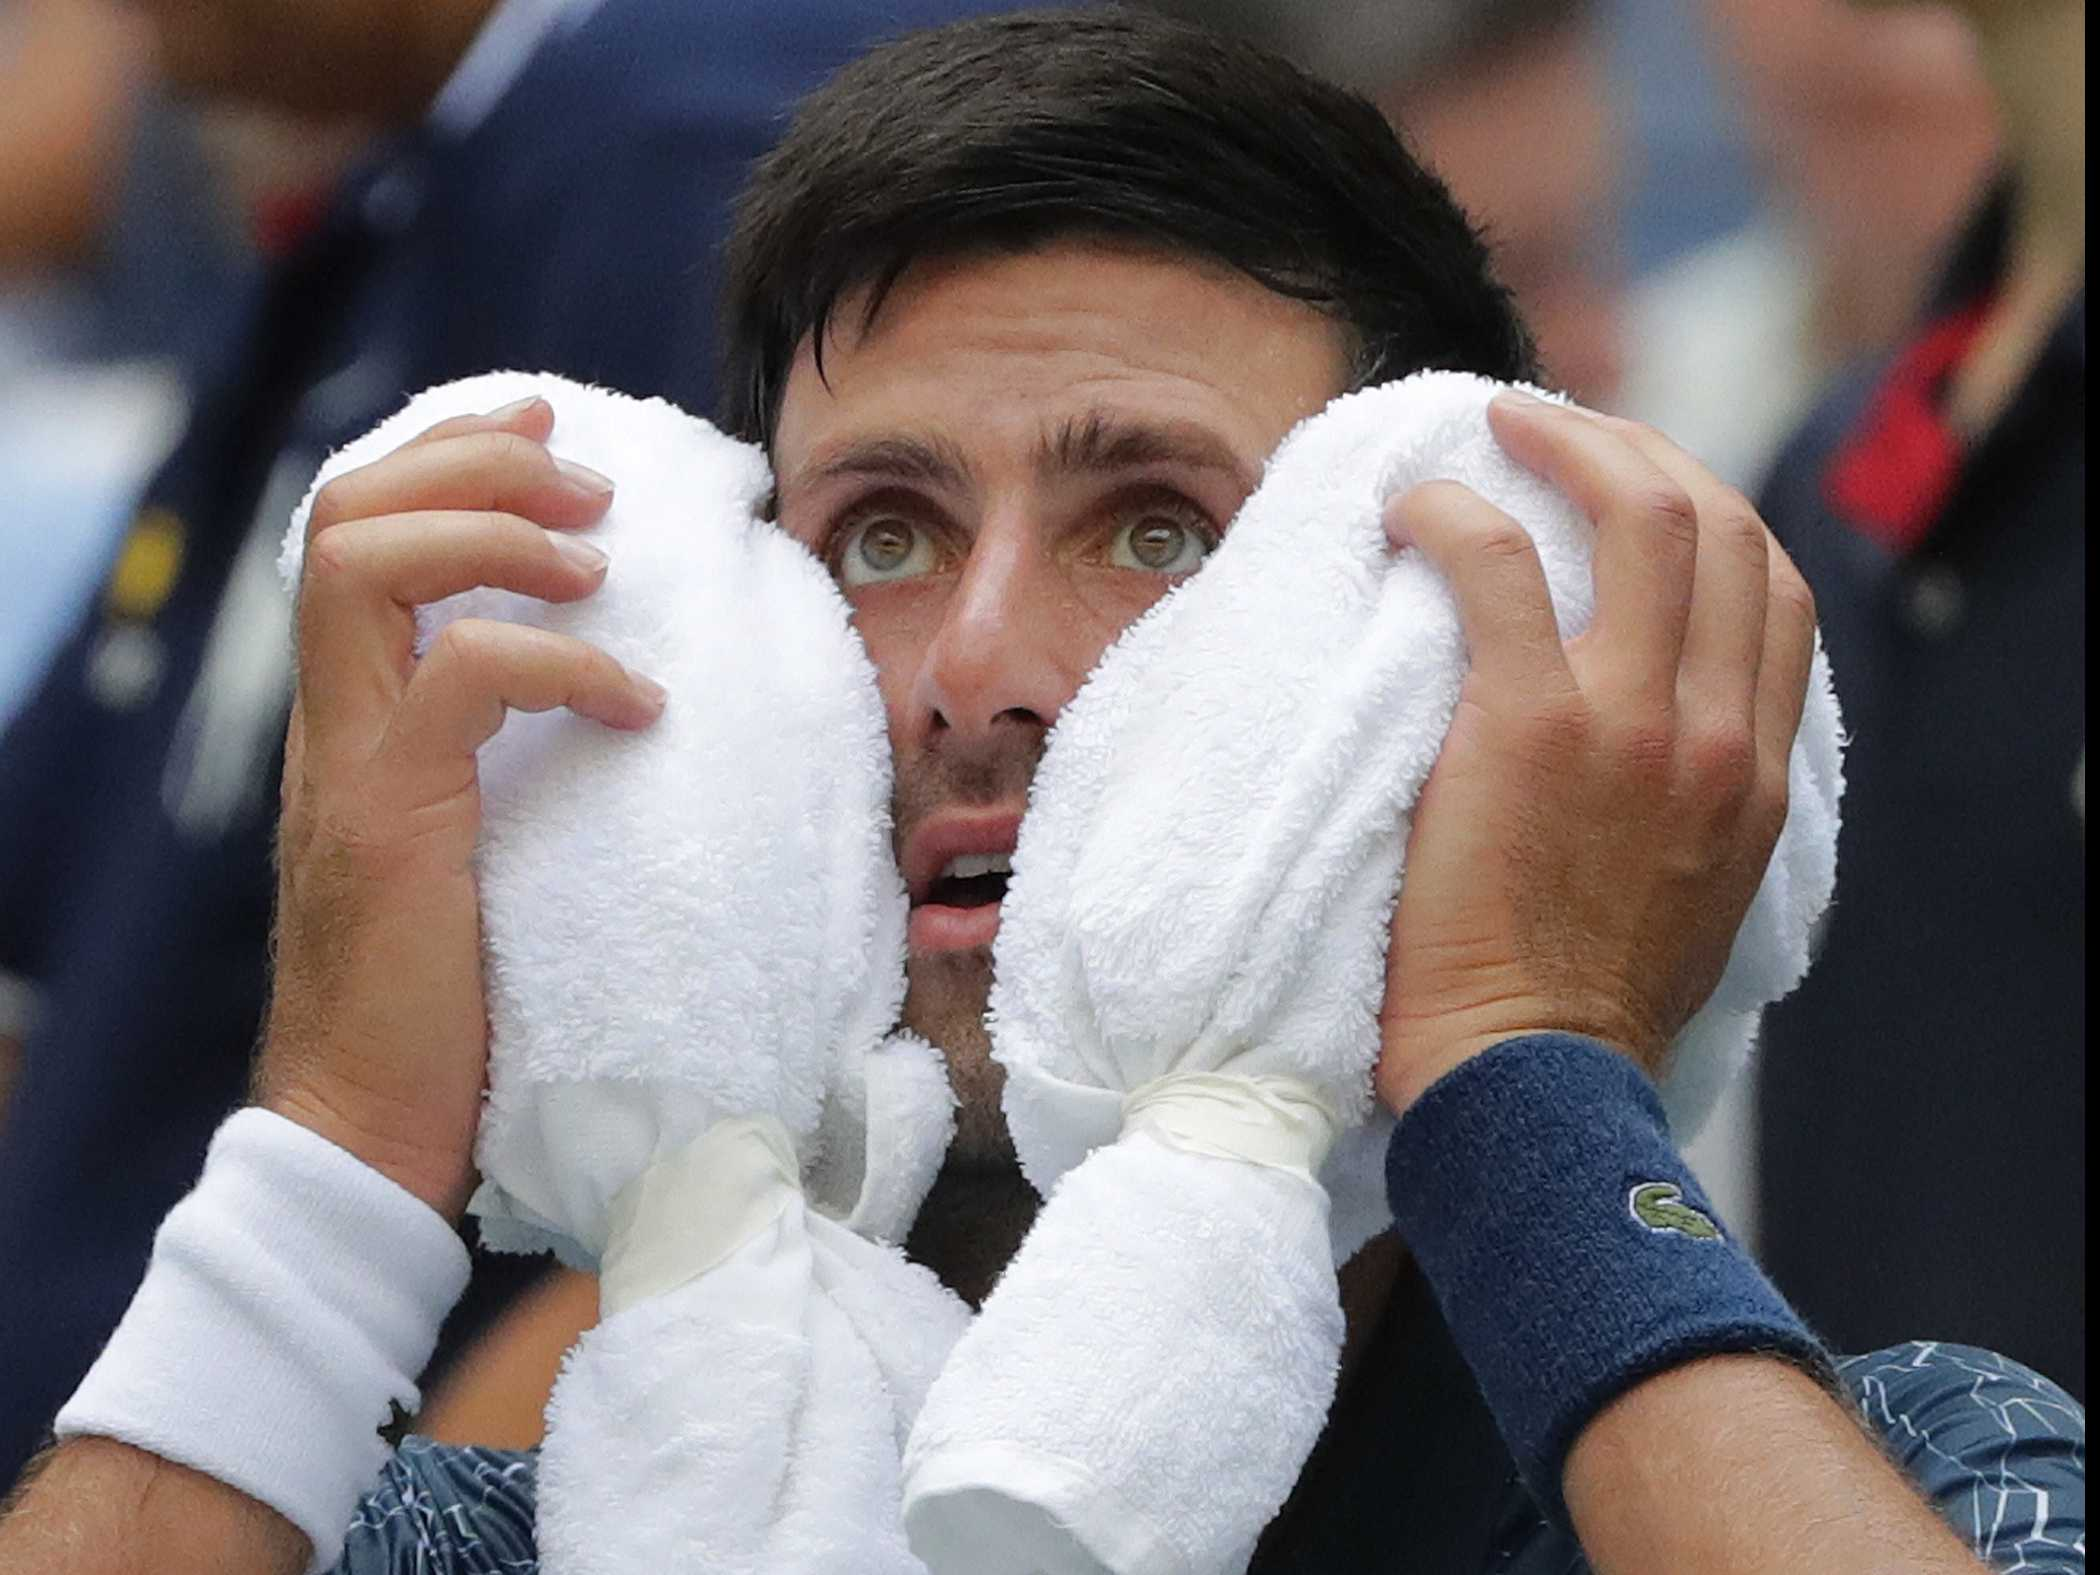 Red Hot: Players Face Brutal Conditions at Steamy US Open